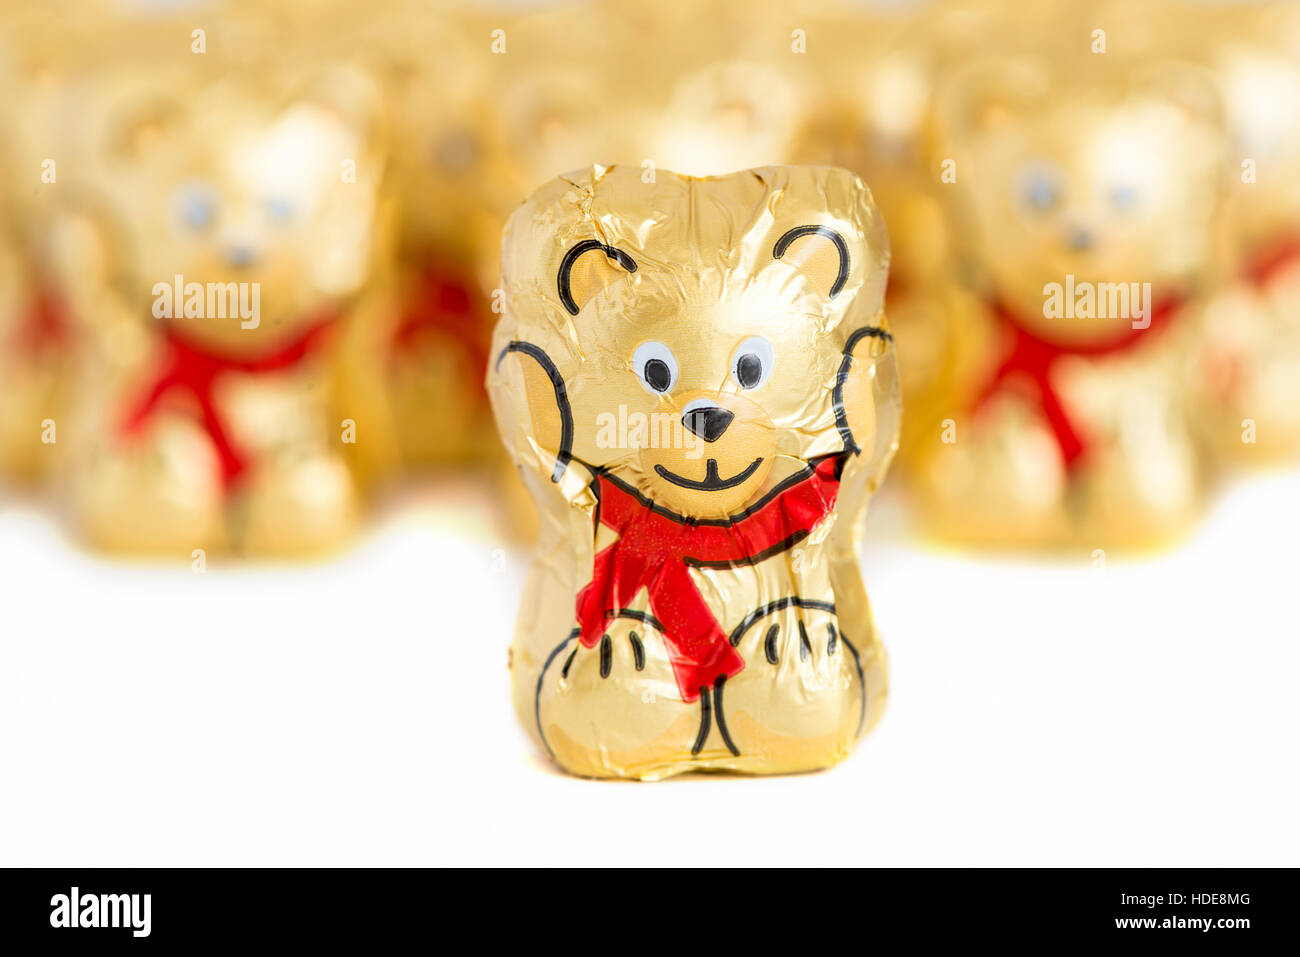 Chocolate bears in golden foil - Stock Image